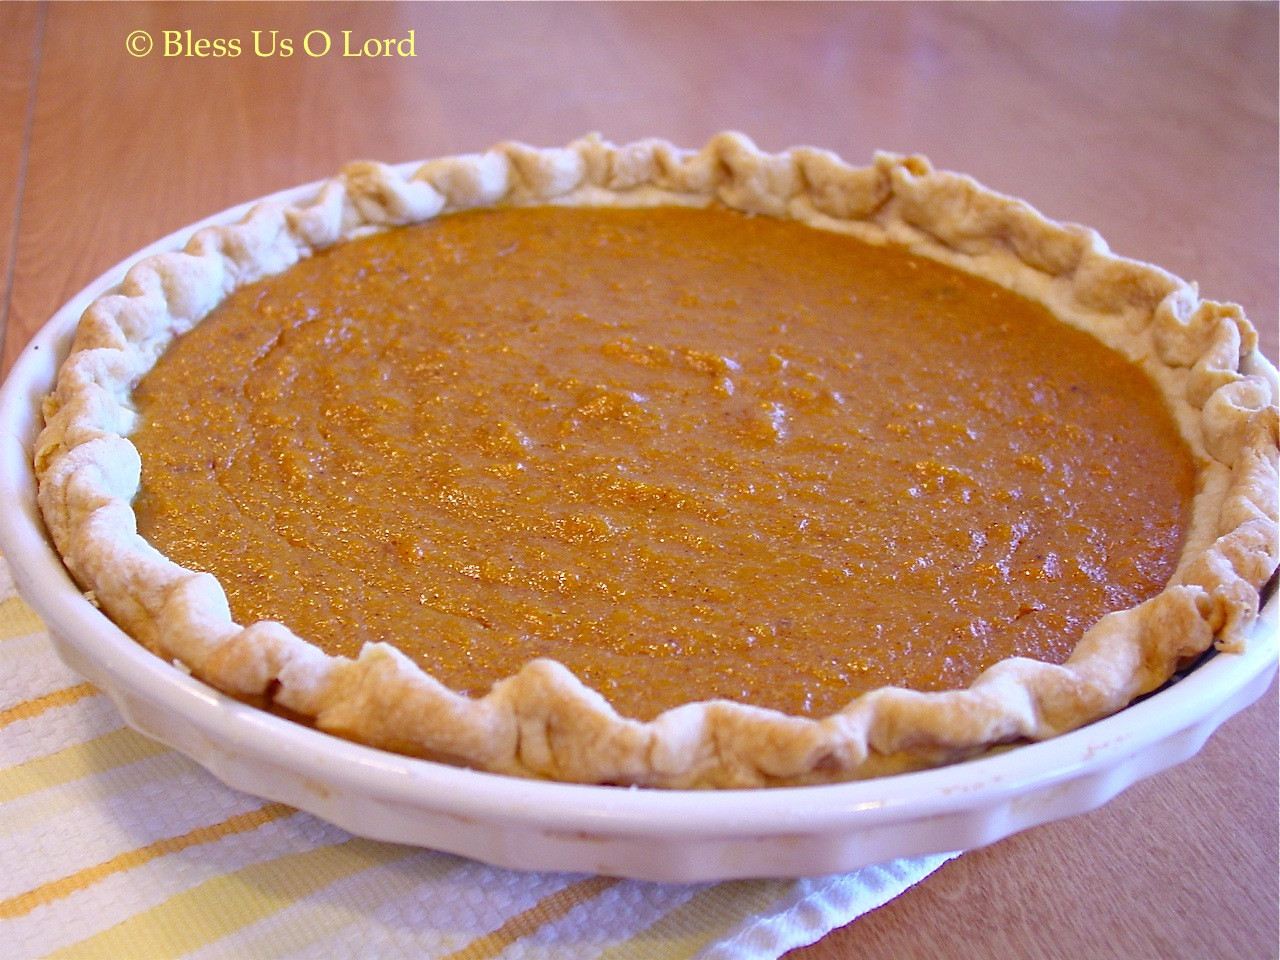 Bless Us O Lord...: Sweet Potato Pie